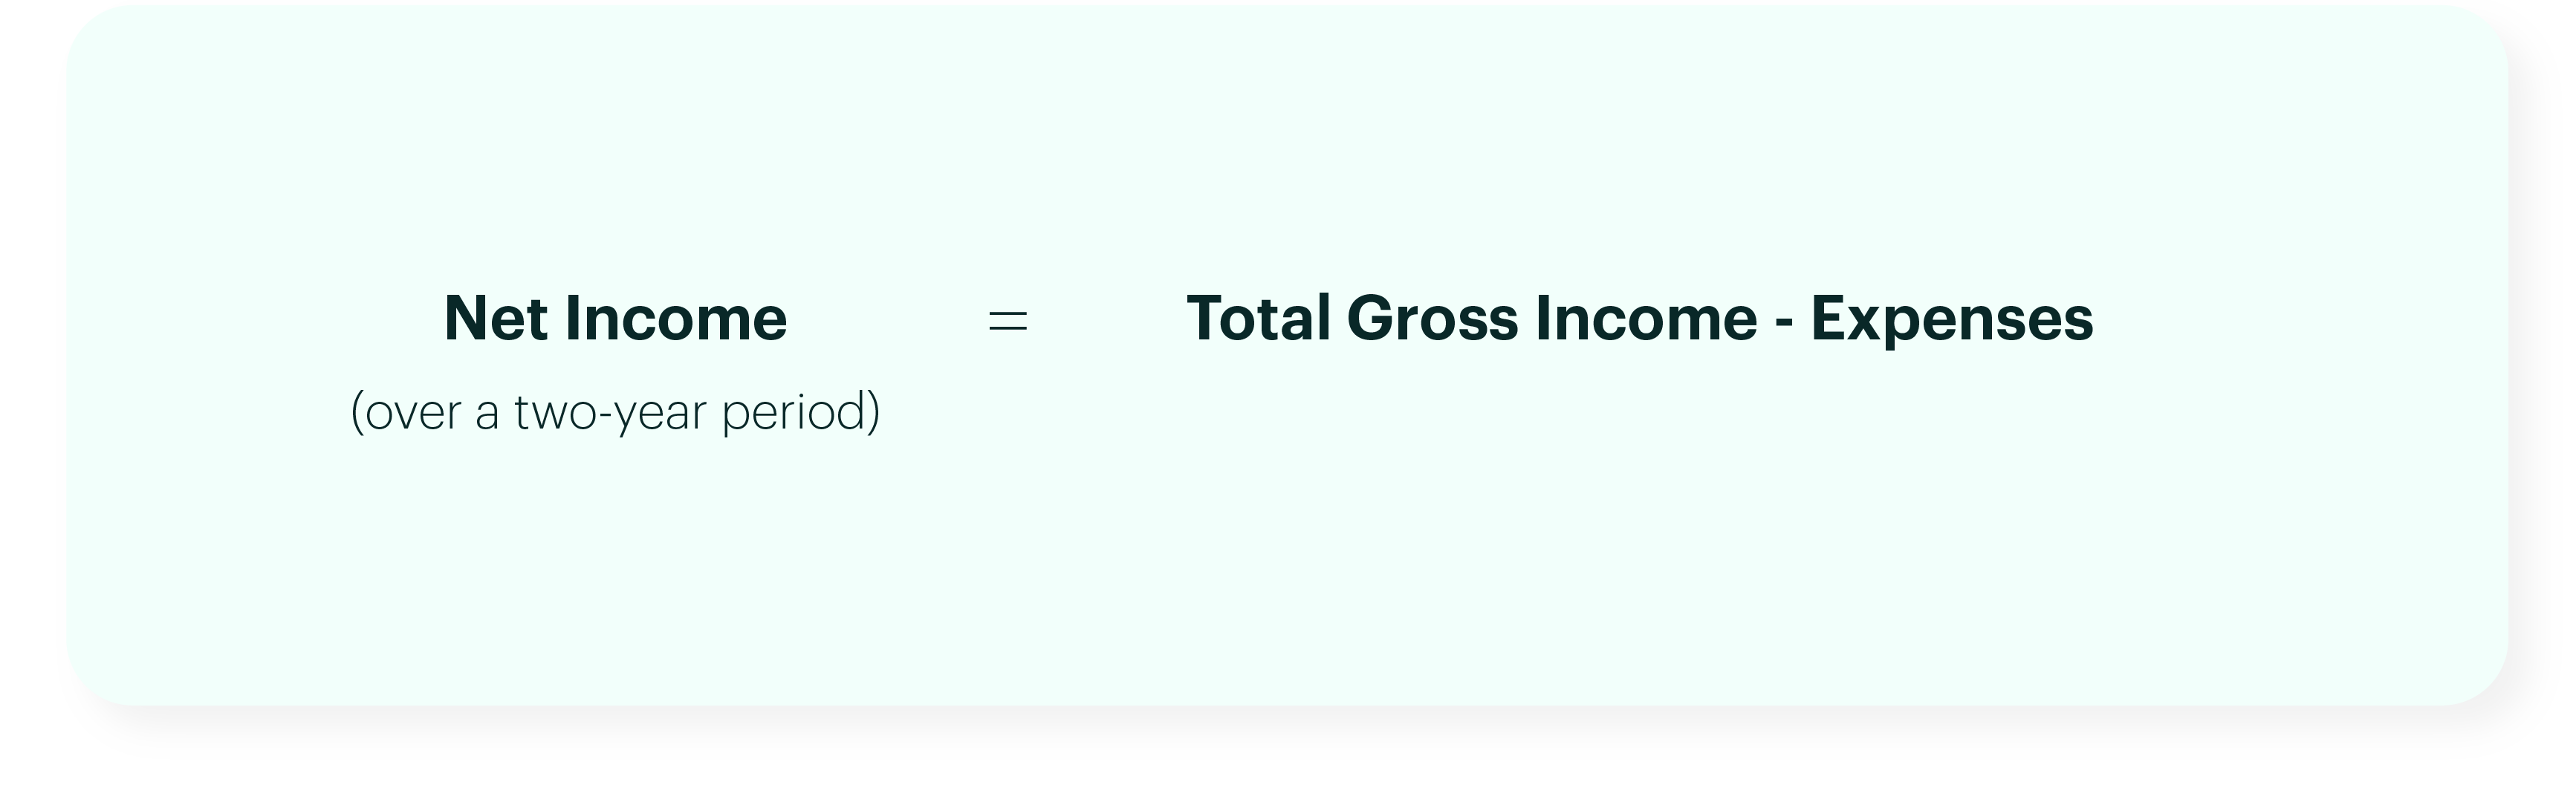 Net Income (Over a Two-Year Period) = Total Gross Income - Expenses